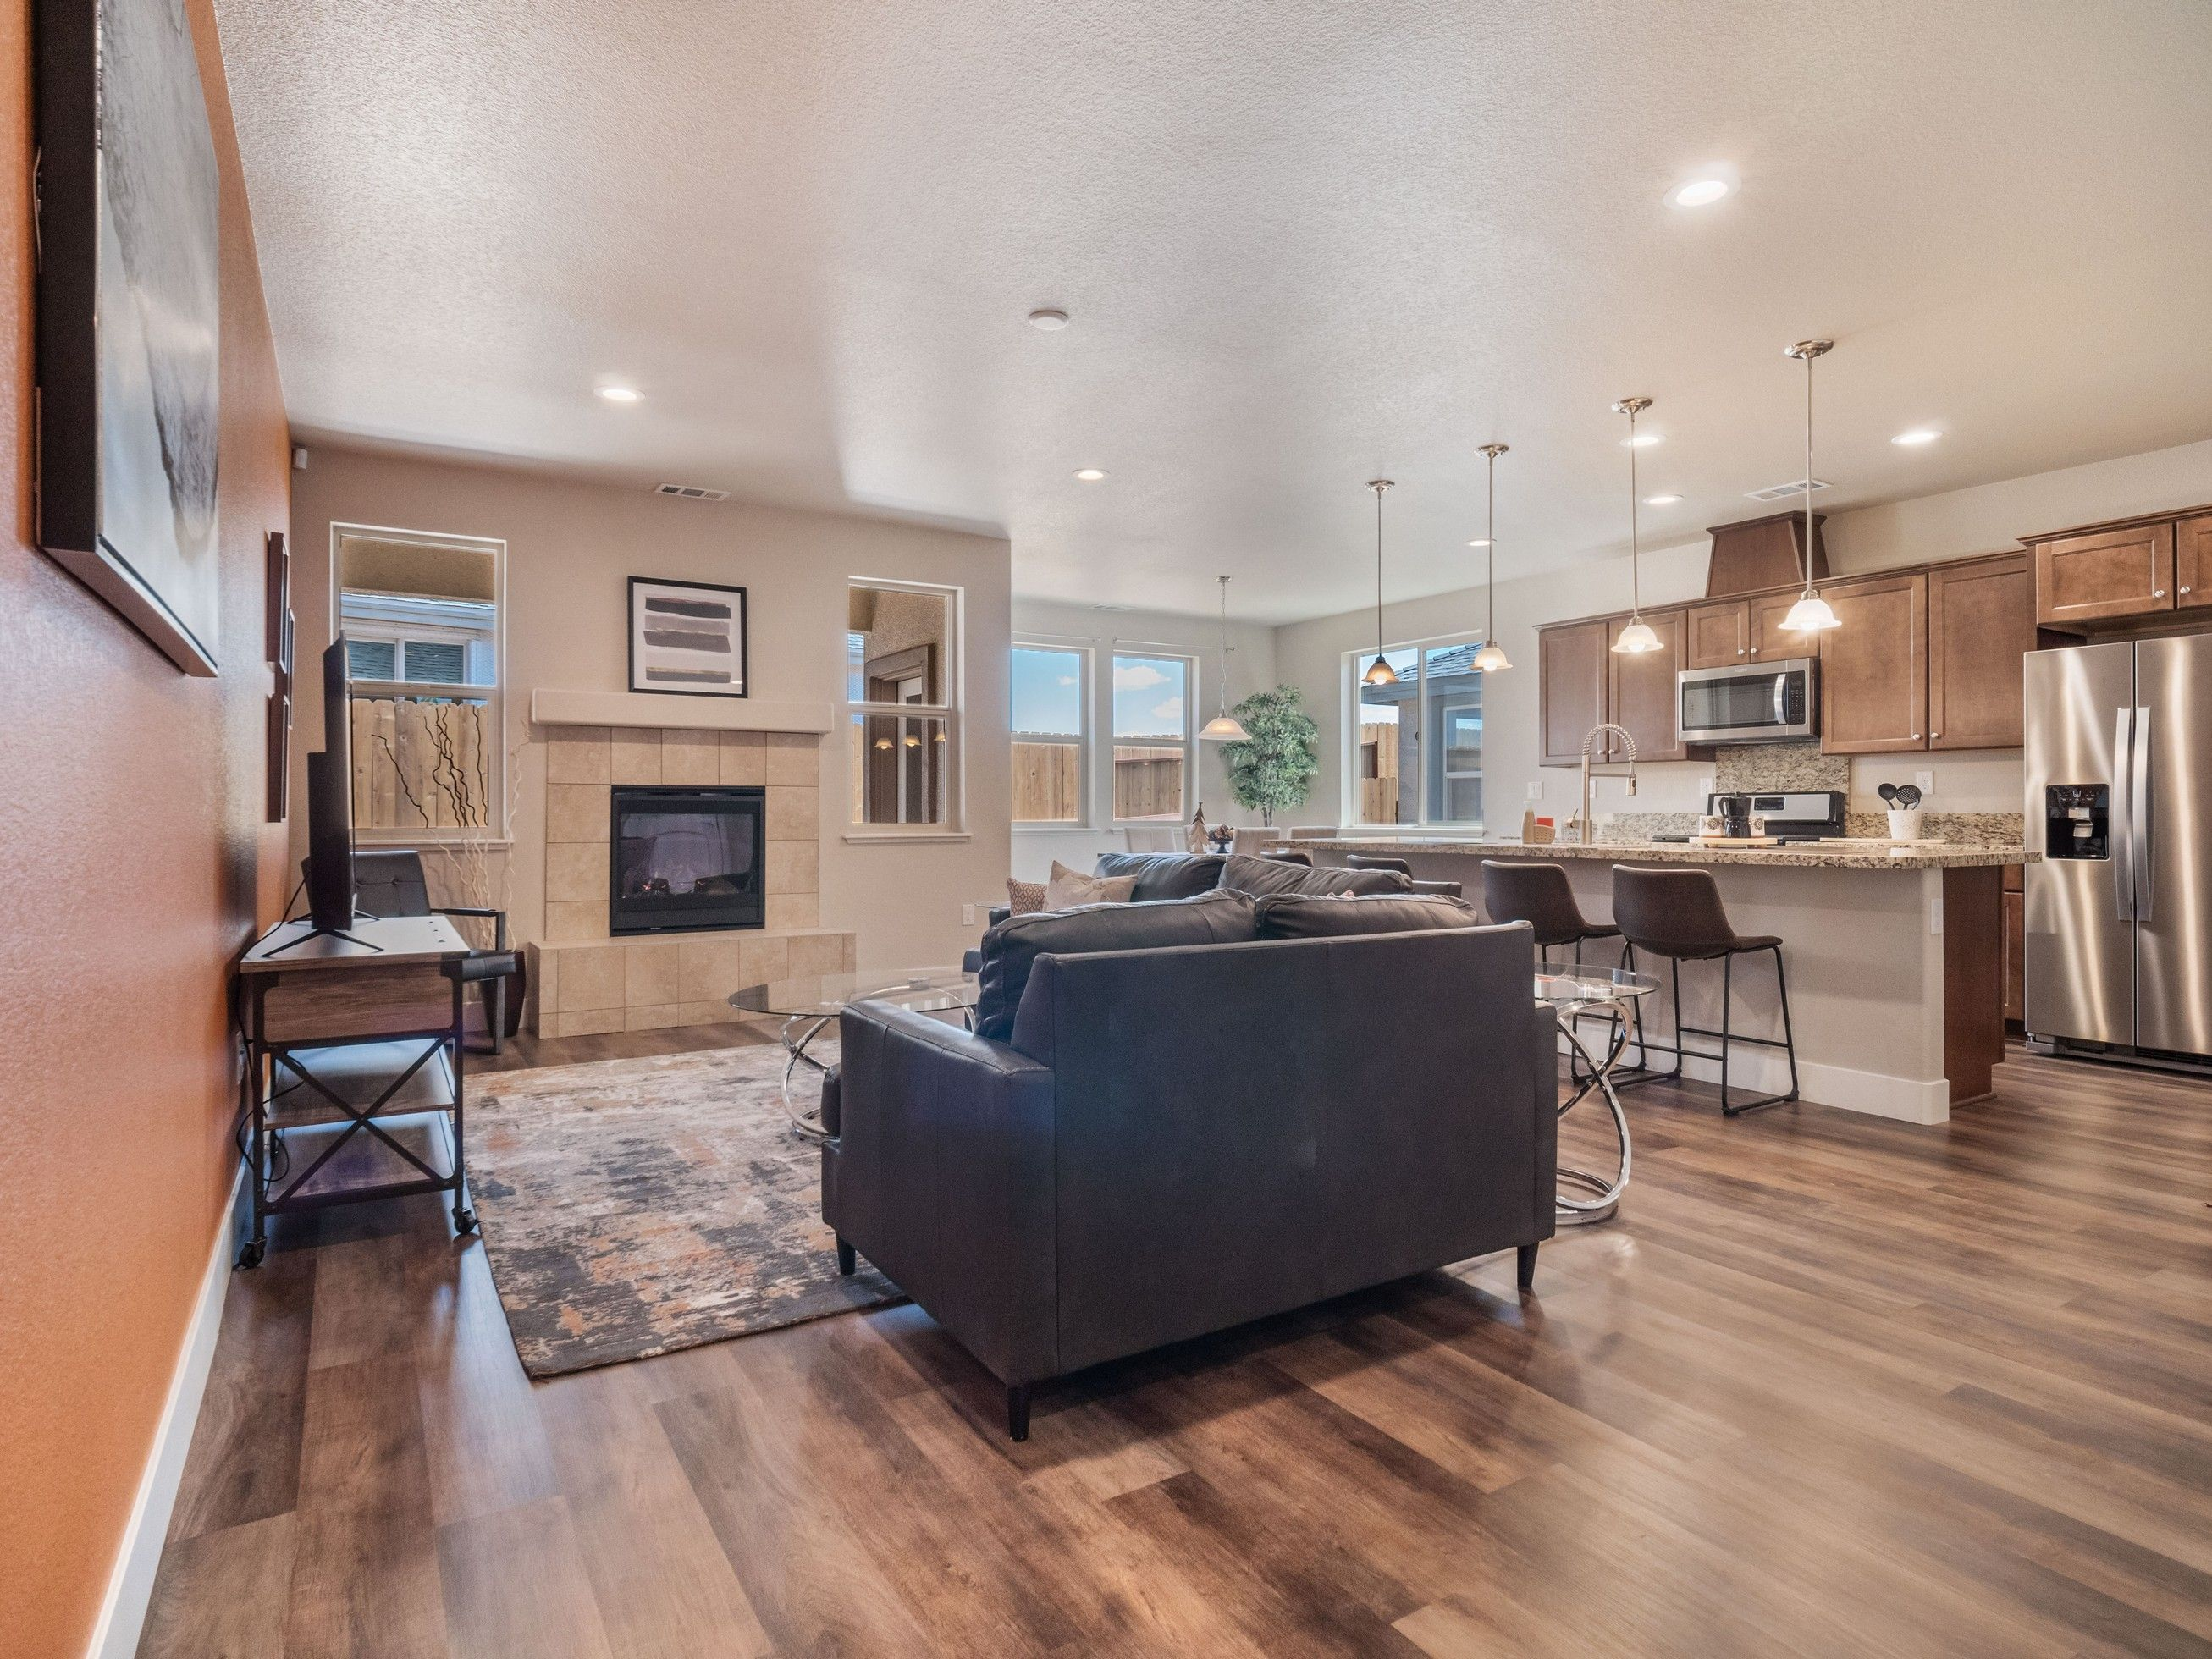 Living Area featured in the Marigold By Carter Hill Homes in Reno, NV